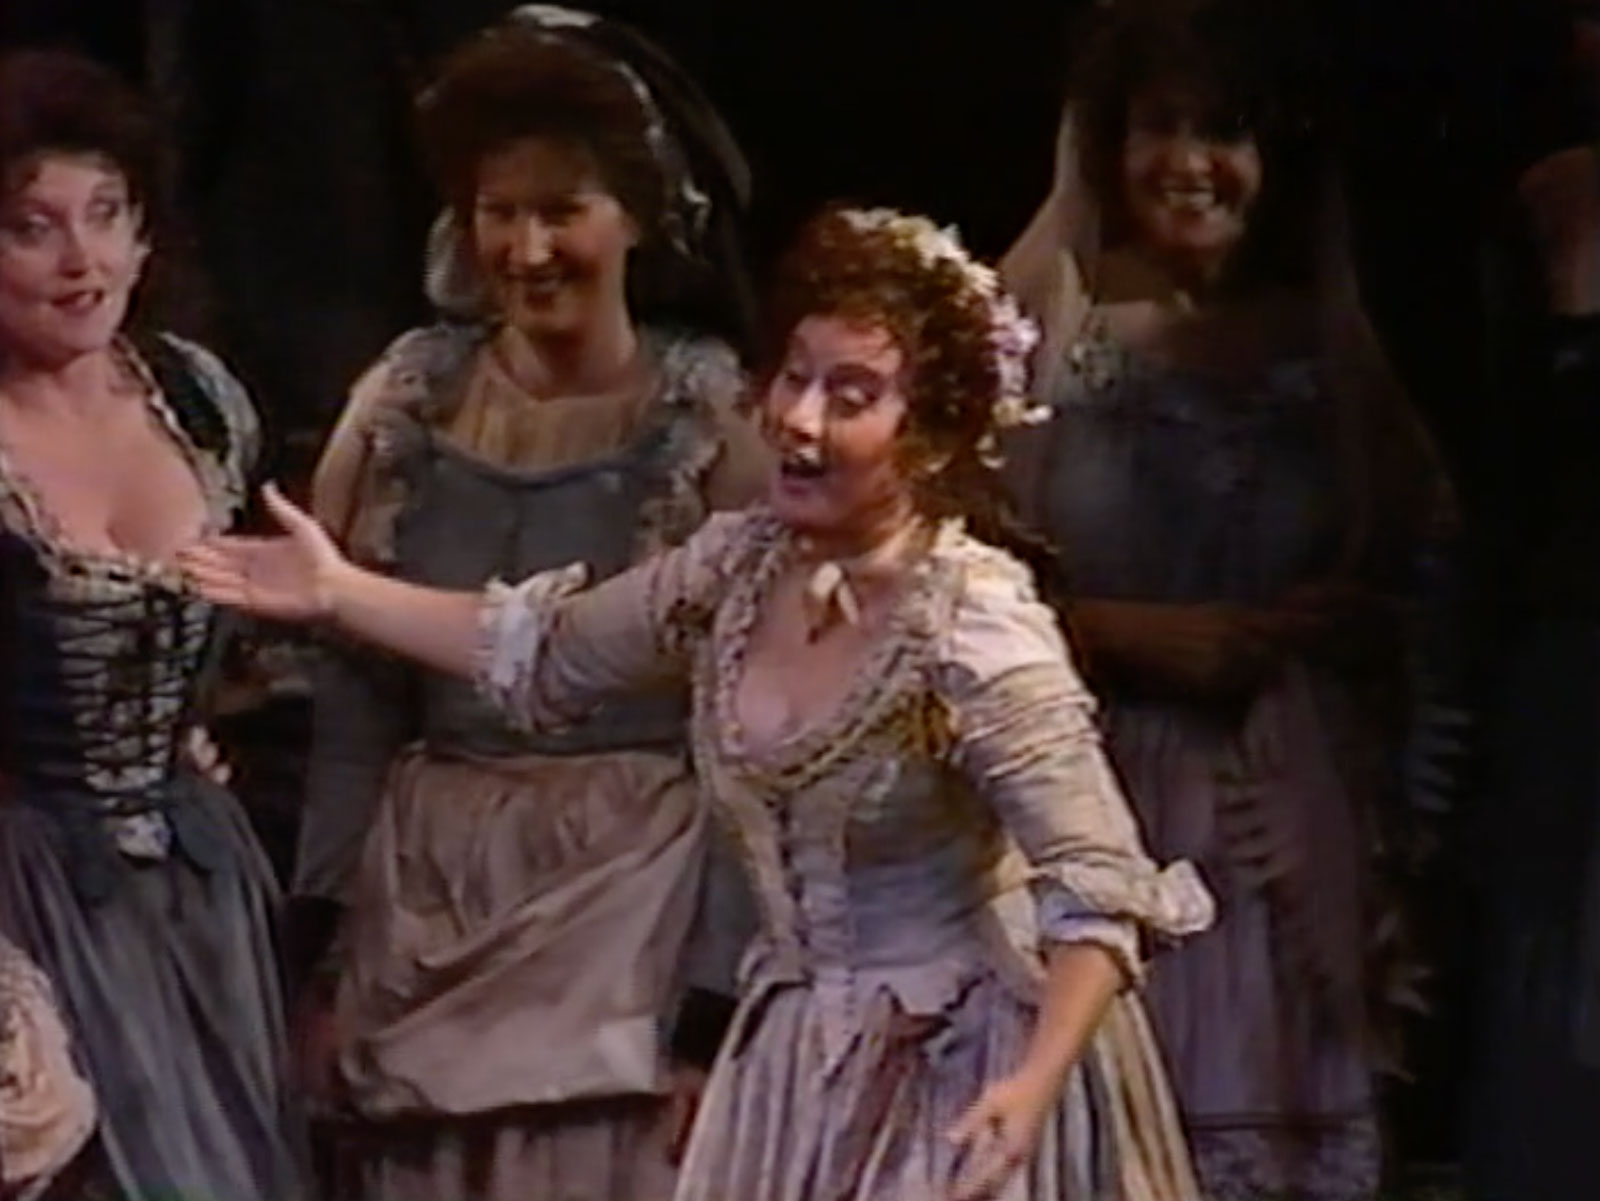 Erie Mills in the role of Zerlina. She is dressed as a peasant woman singing about her wedding to her girl friends in Don Giovanni.